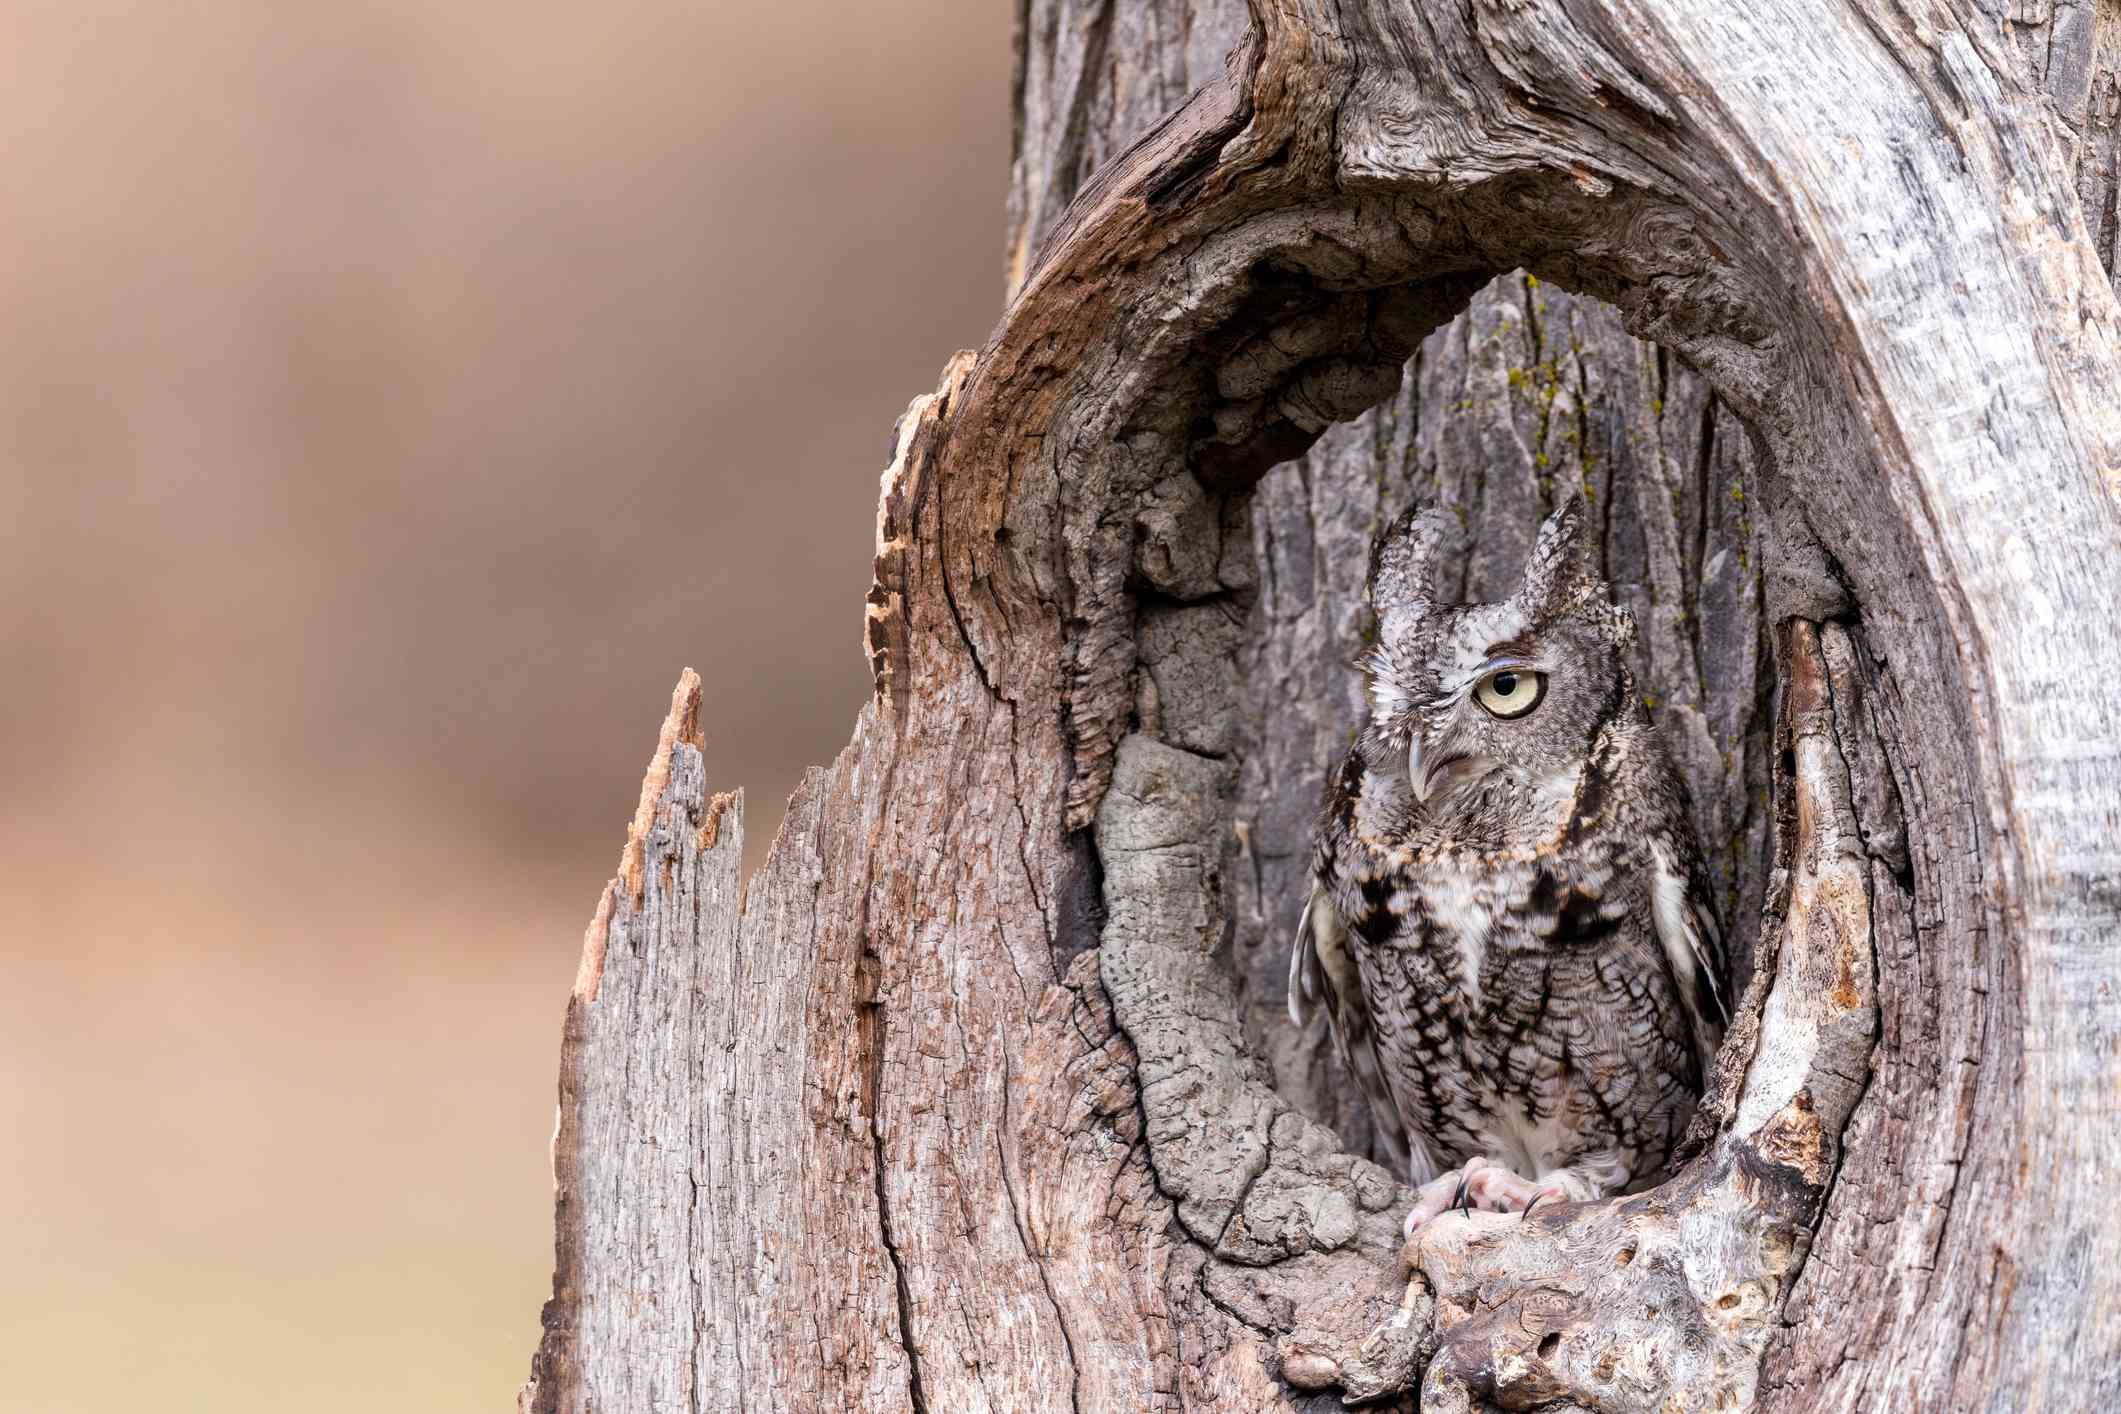 tan and gray eastern screech owl hides in tree trunk cavity and looks out